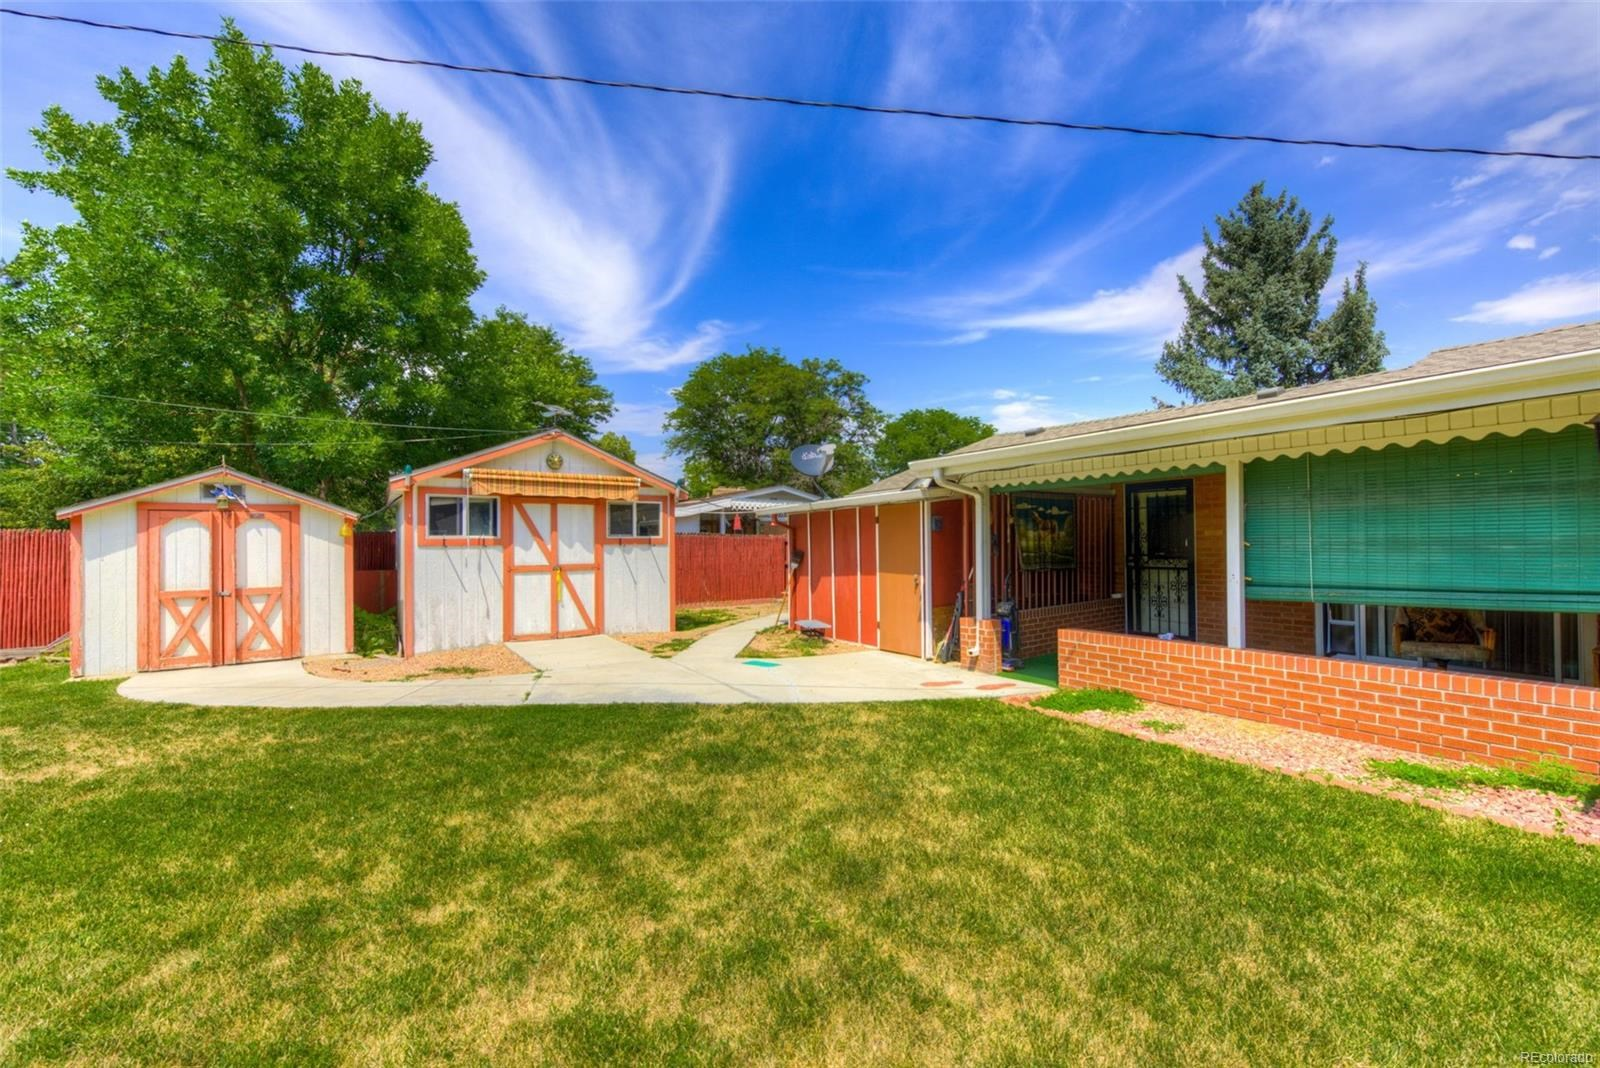 MLS# 5735873 - 31 - 45 S Brentwood Street, Lakewood, CO 80226